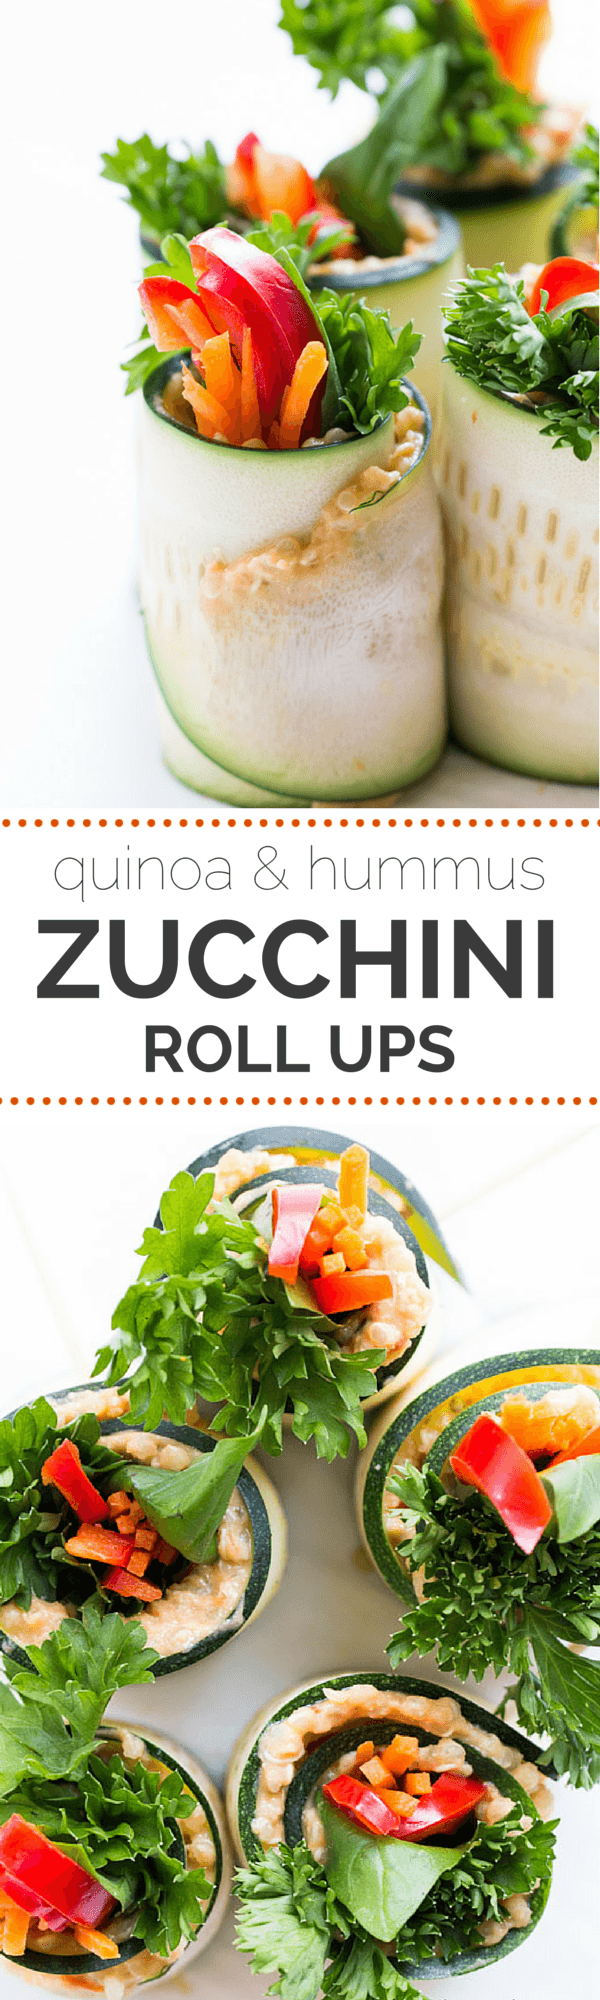 My newest FAVORITE snack >> Zucchini Roll Ups with quinoa, hummus and fresh veggies | gluten-free + vegan | recipe on simplyquinoa.com